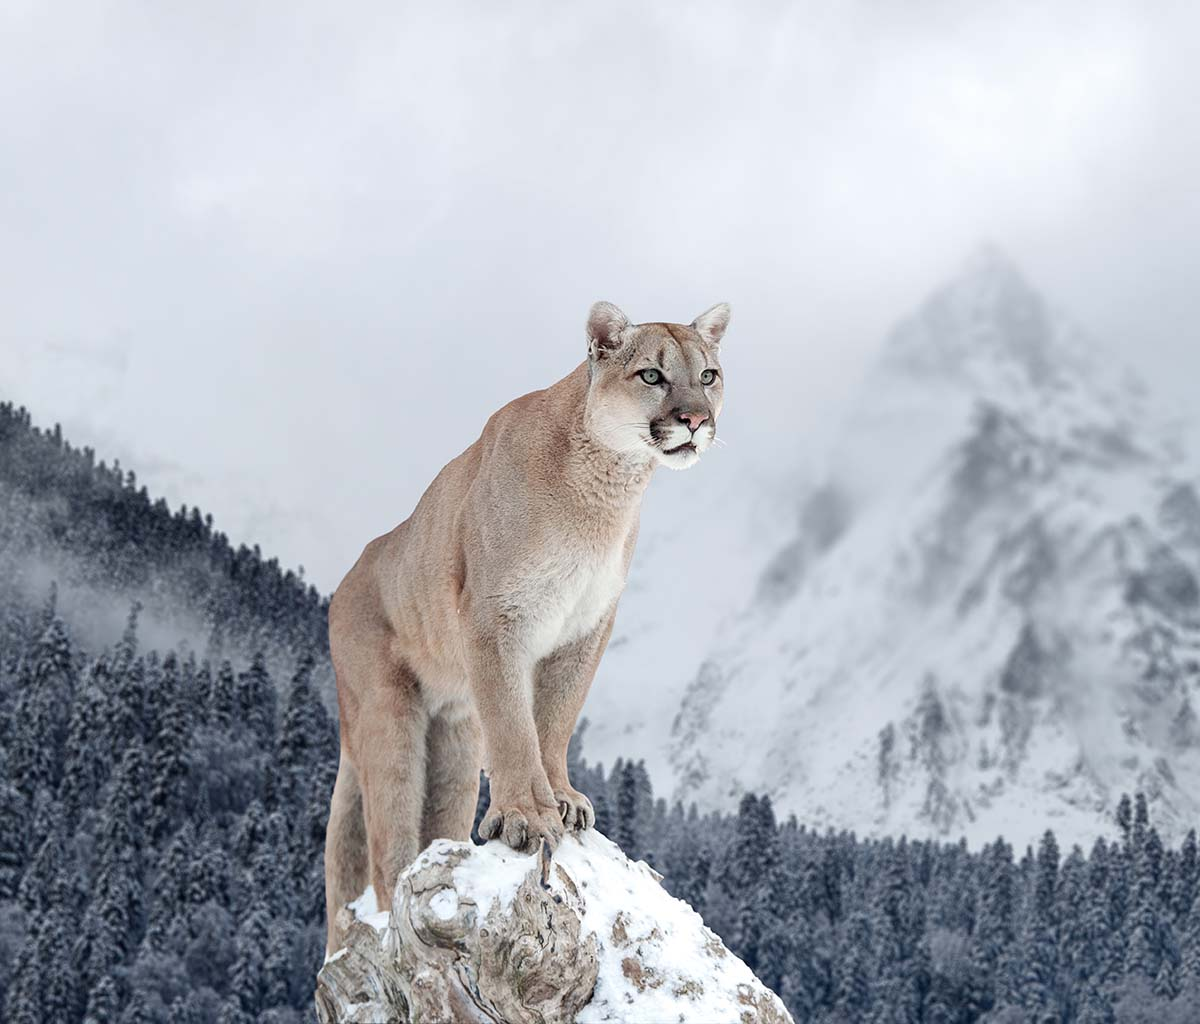 The elusive and solitary cougar is also known by the names mountain lion, puma, and panther.